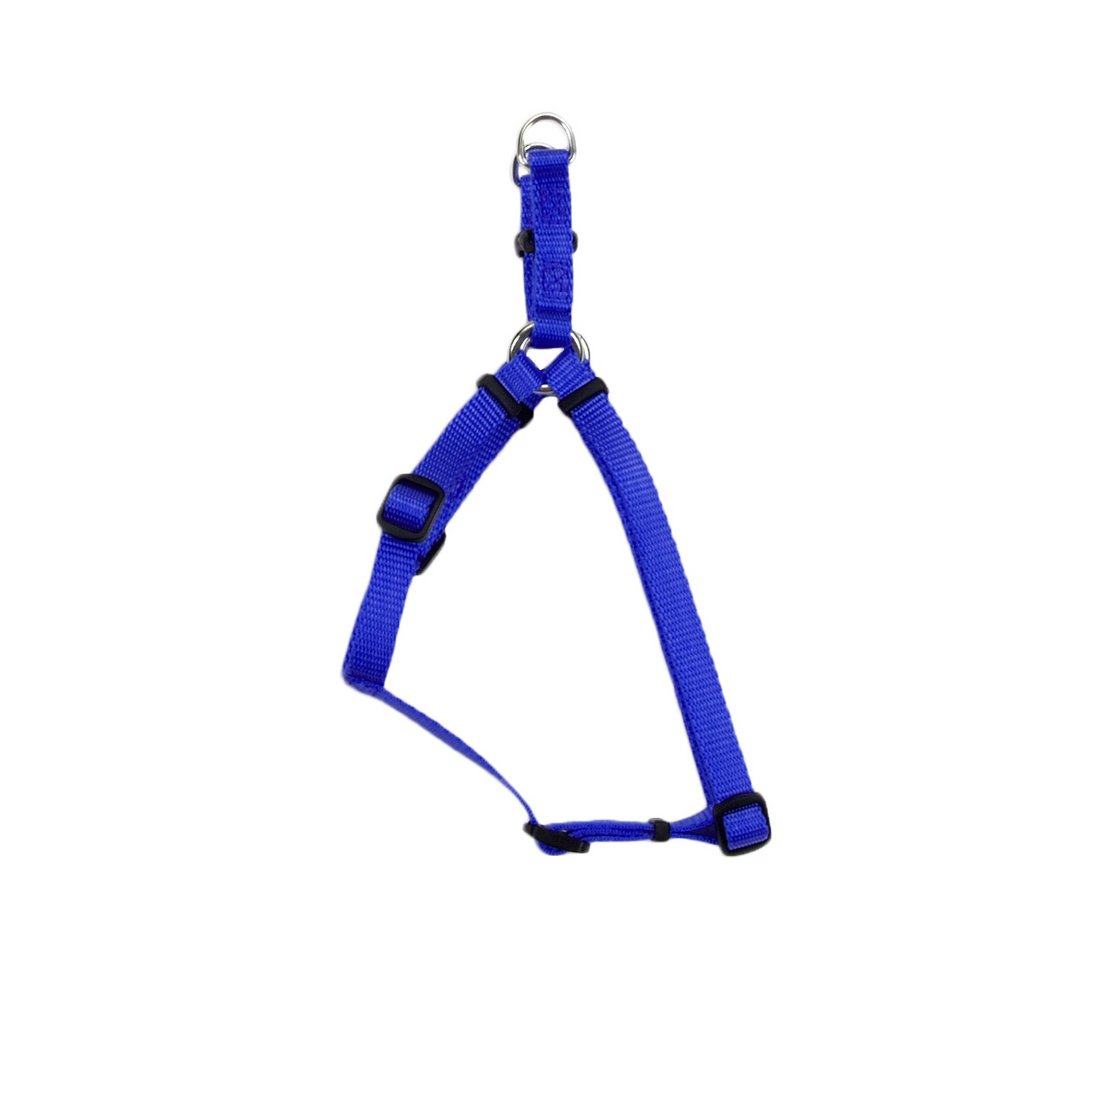 coastal-comfort-harness-3-4-blue